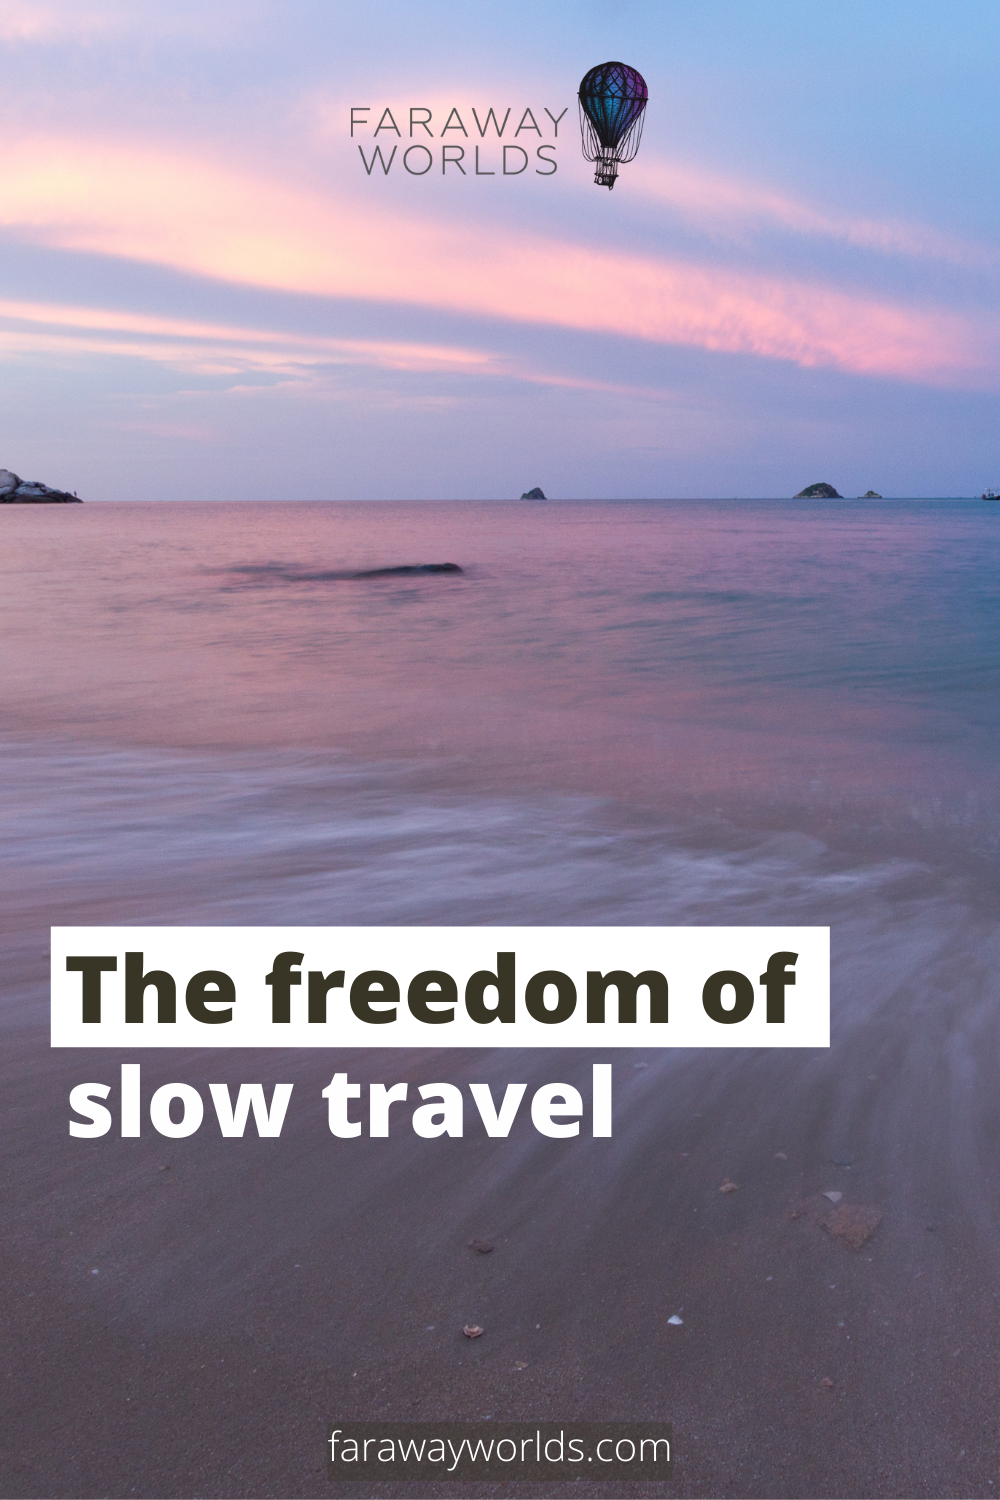 The freedom of slow travel